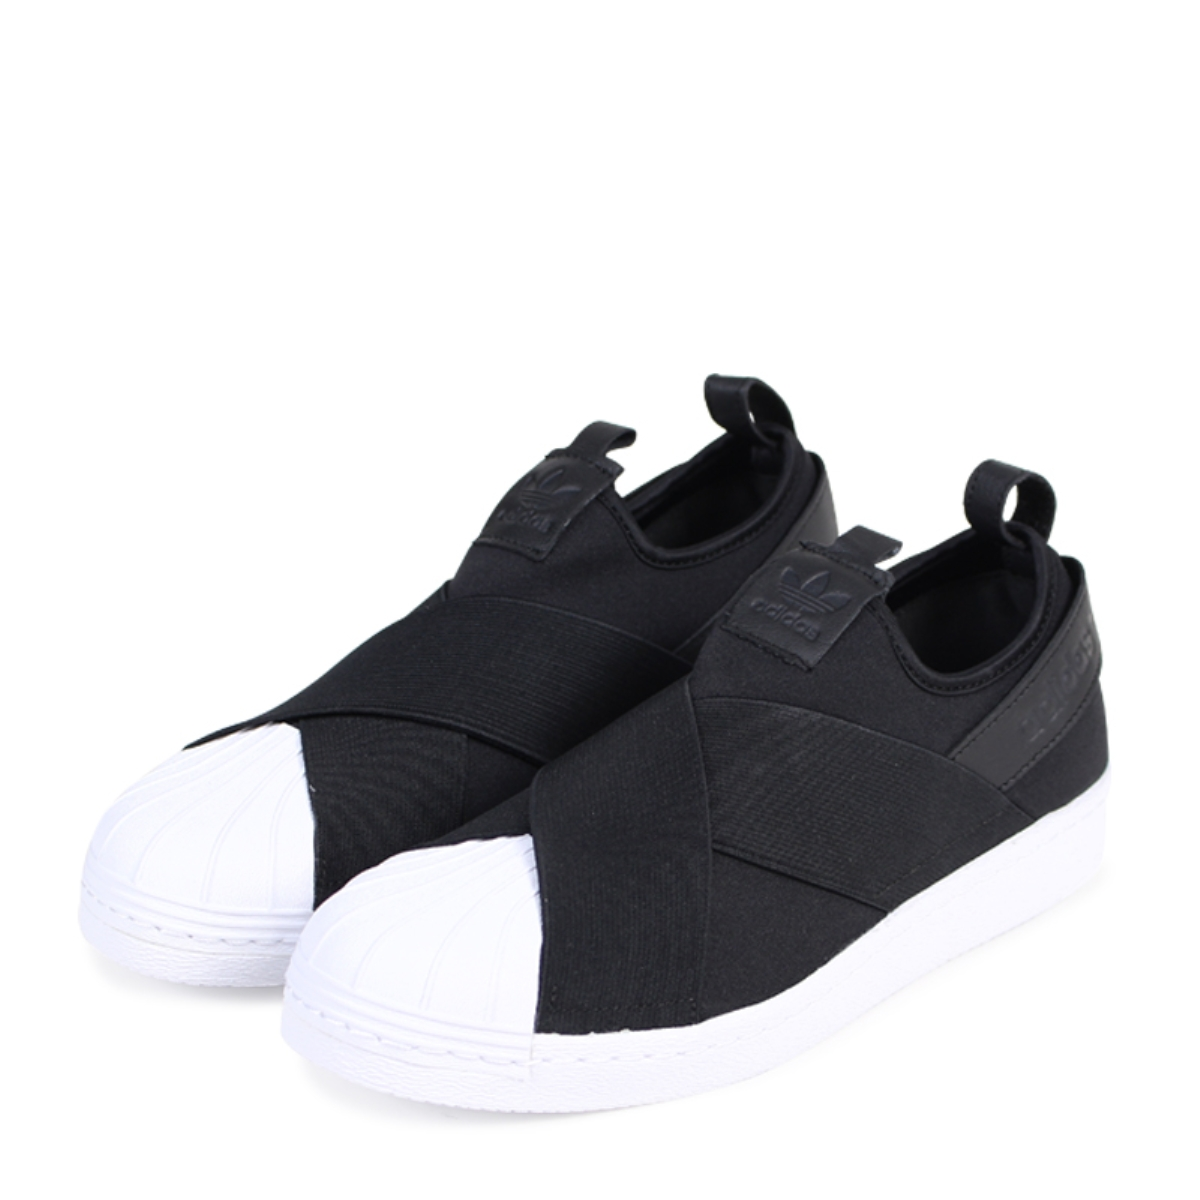 buy popular 1b11e c3129 adidas Originals SUPERSTAR SLIP-ON Adidas superstar sneakers slip-ons men  gap Dis BZ0112 black originals [1/30 Shinnyu load] [181]